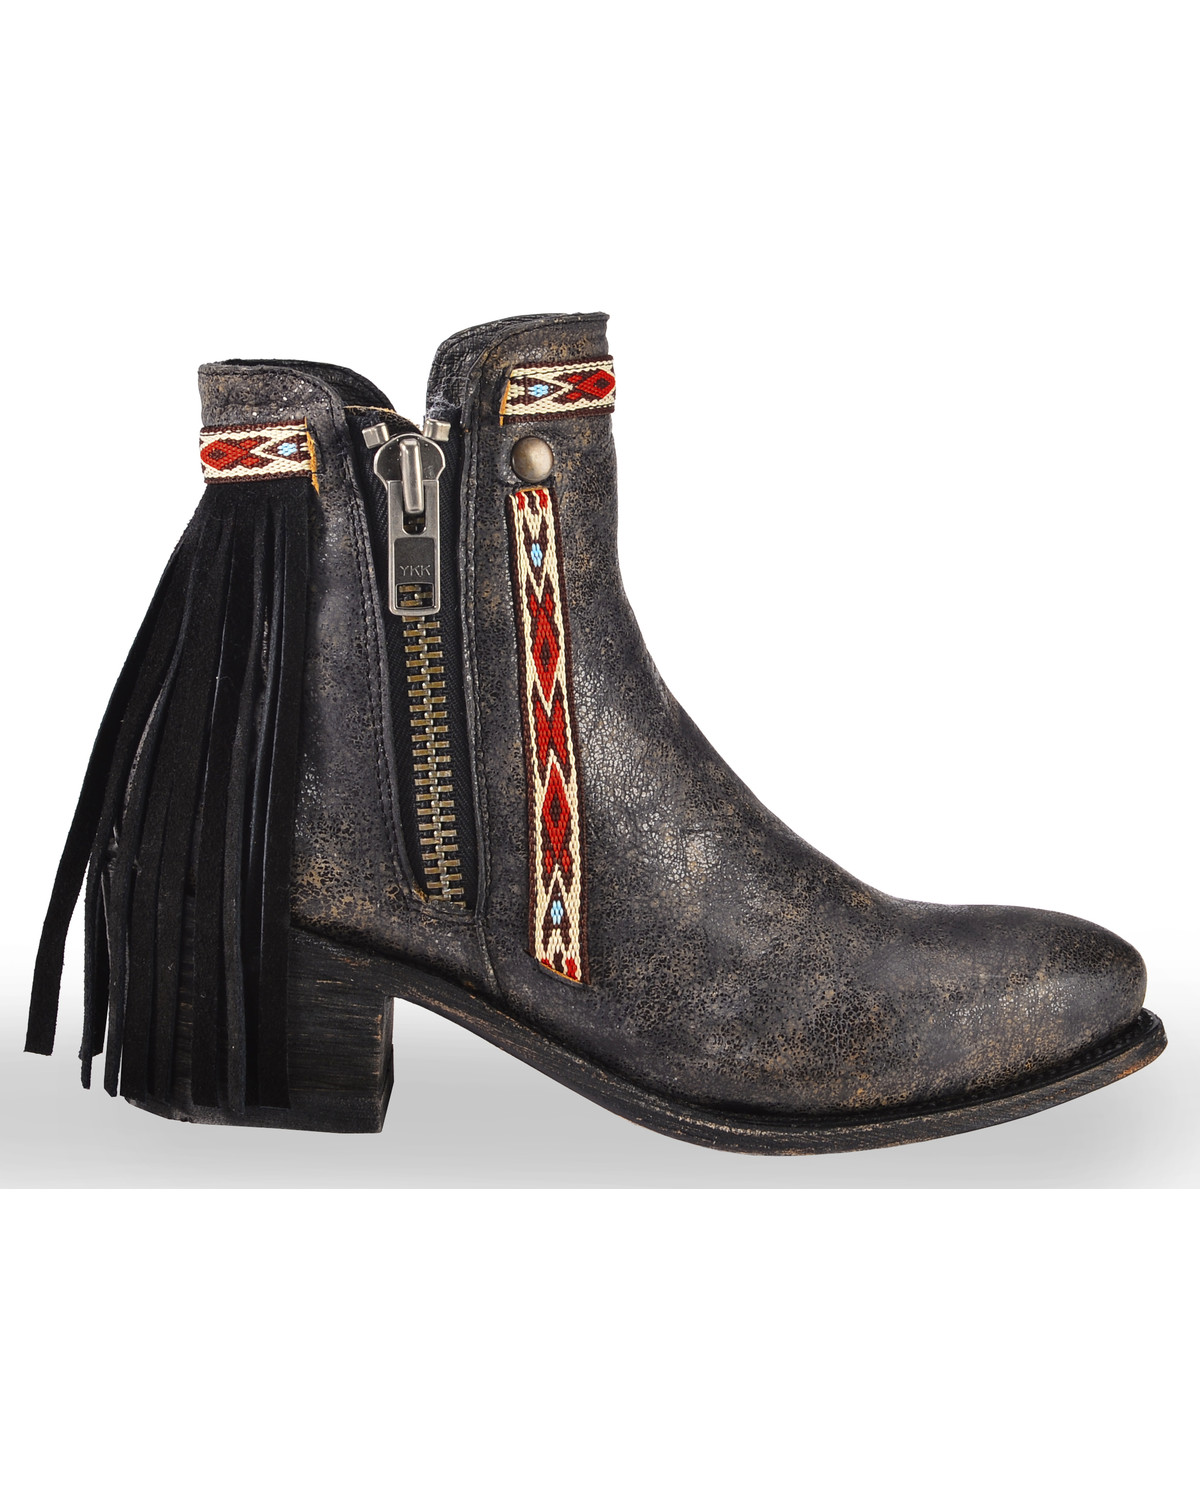 191b91a0844 Corral Women s Fringe Ankle Booties